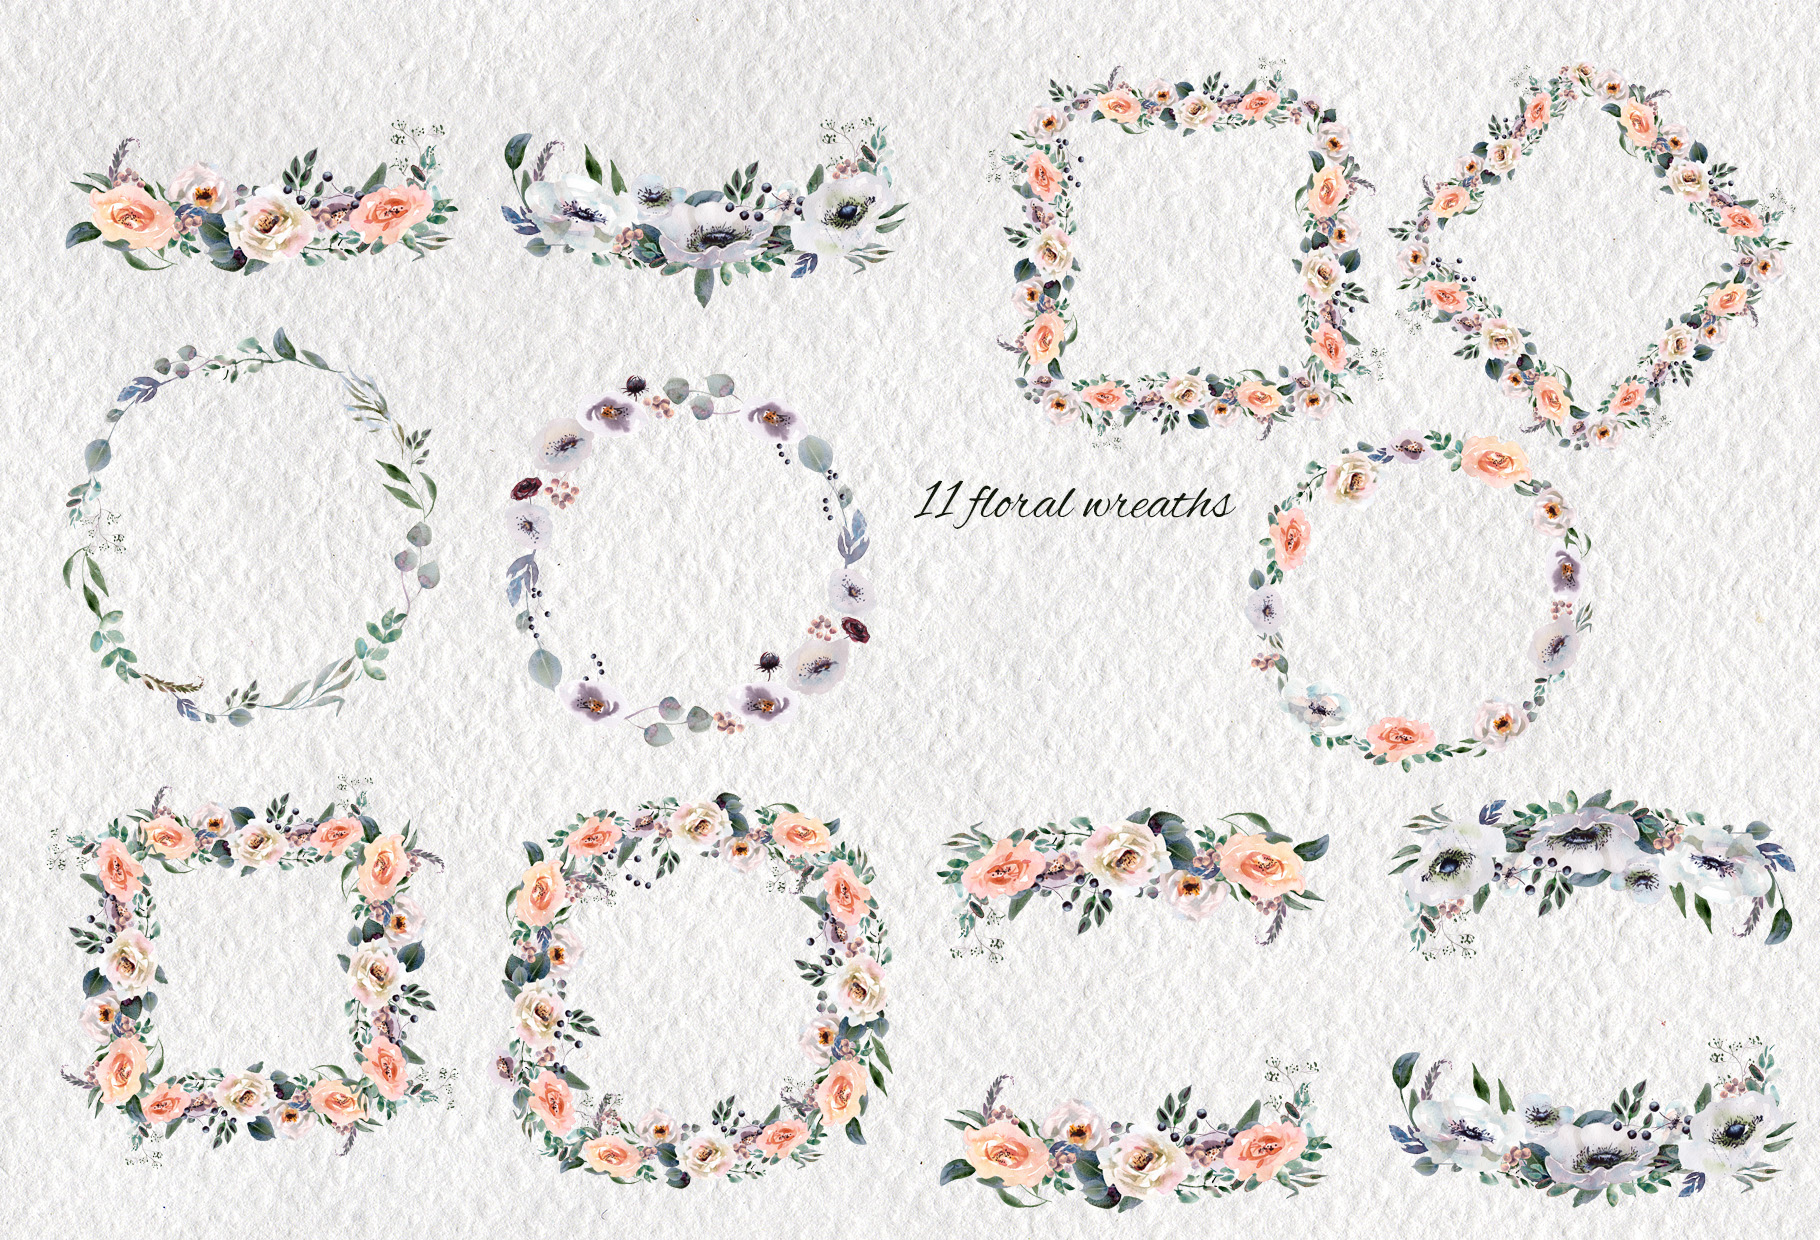 Watercolor flower design clipart example image 9